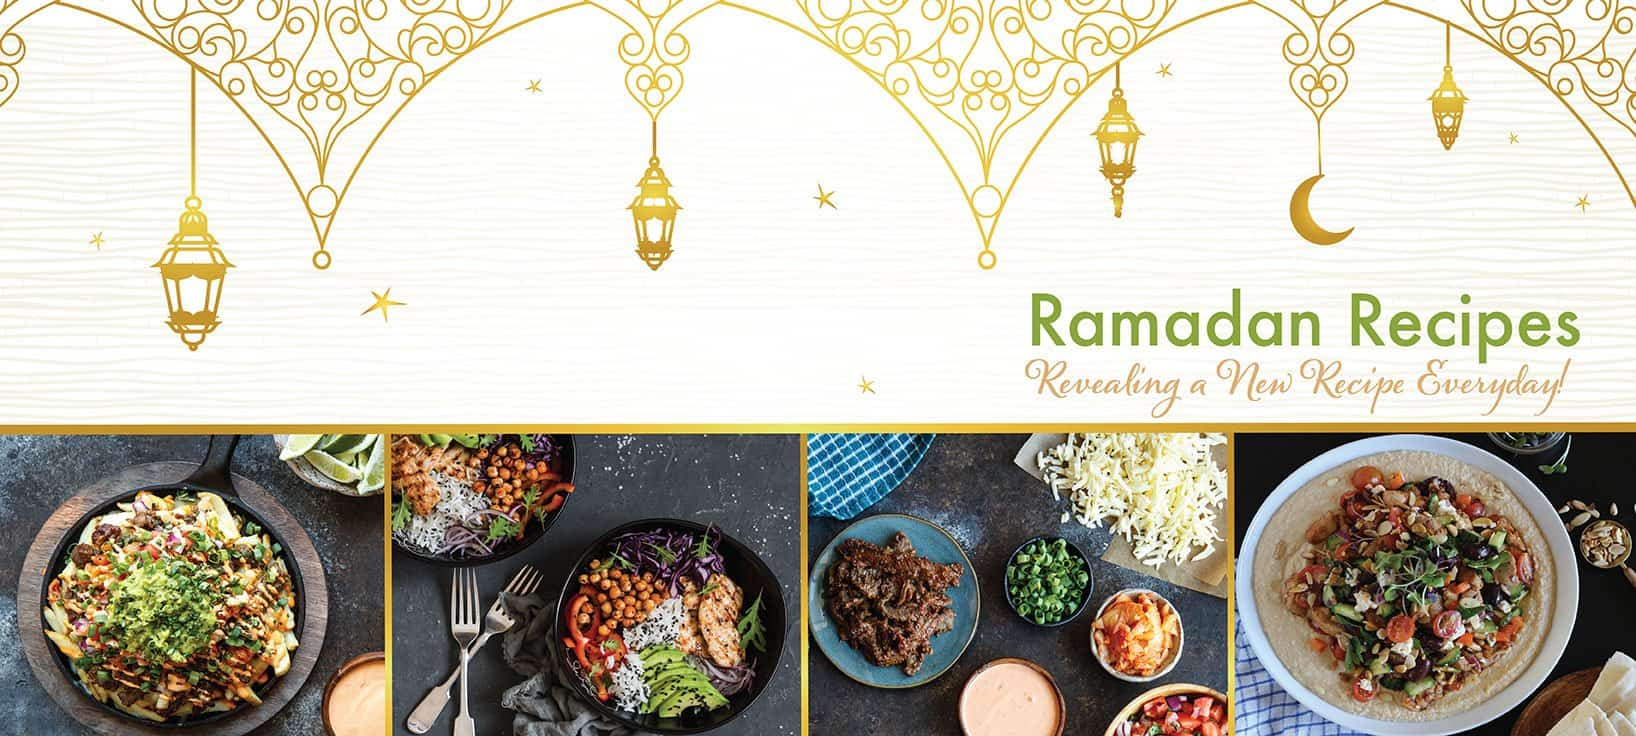 Ramadan-Banner-with-crescent-moon-01-01